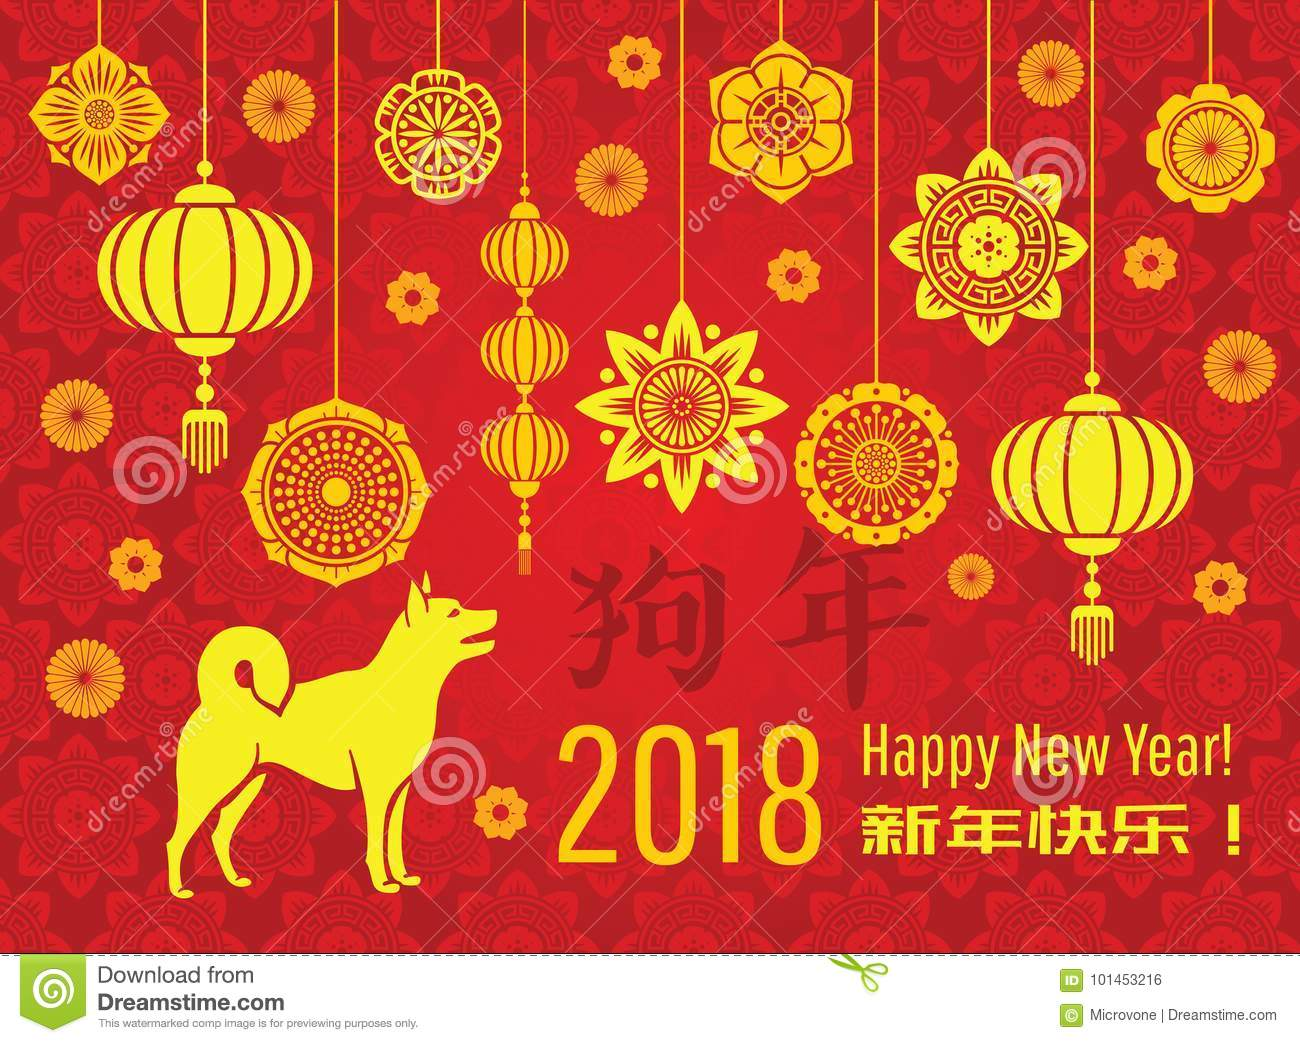 Chinese New Year 2018 Wallpaper With Asian Lanterns And Decorative Elements Dog Vector Greeting